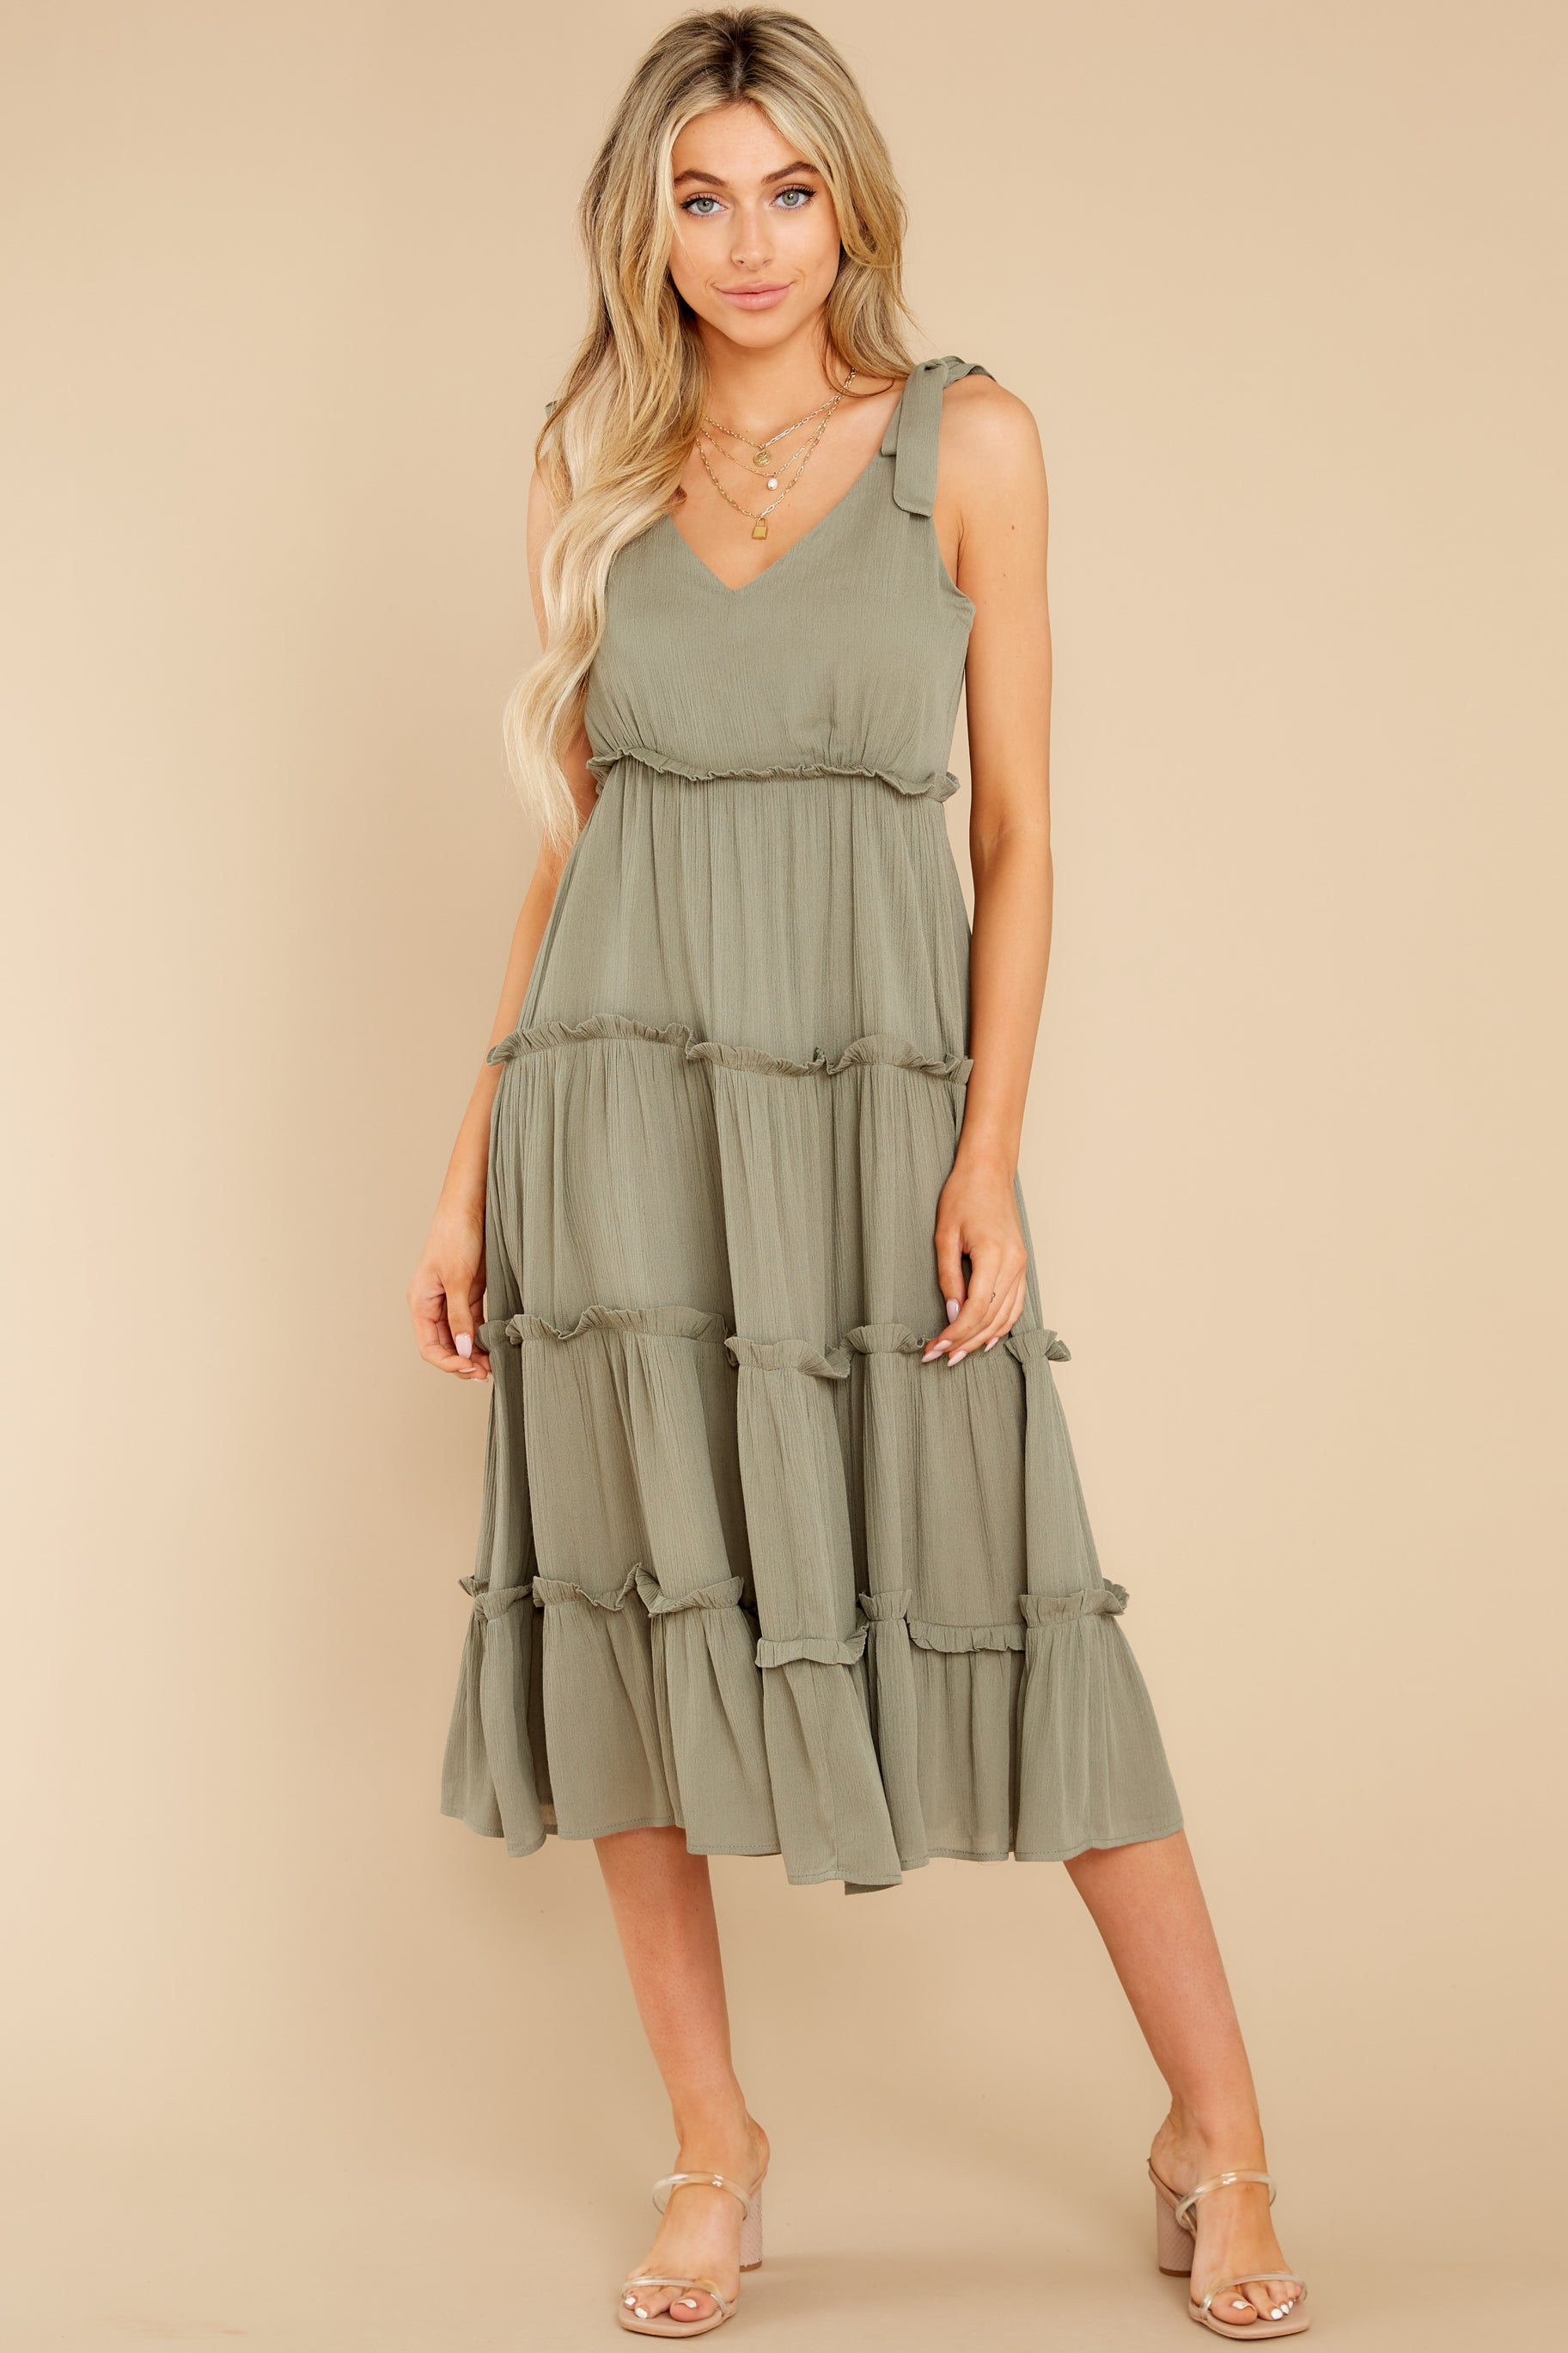 3 In Full Swing Olive Green Midi Dress at reddress.com